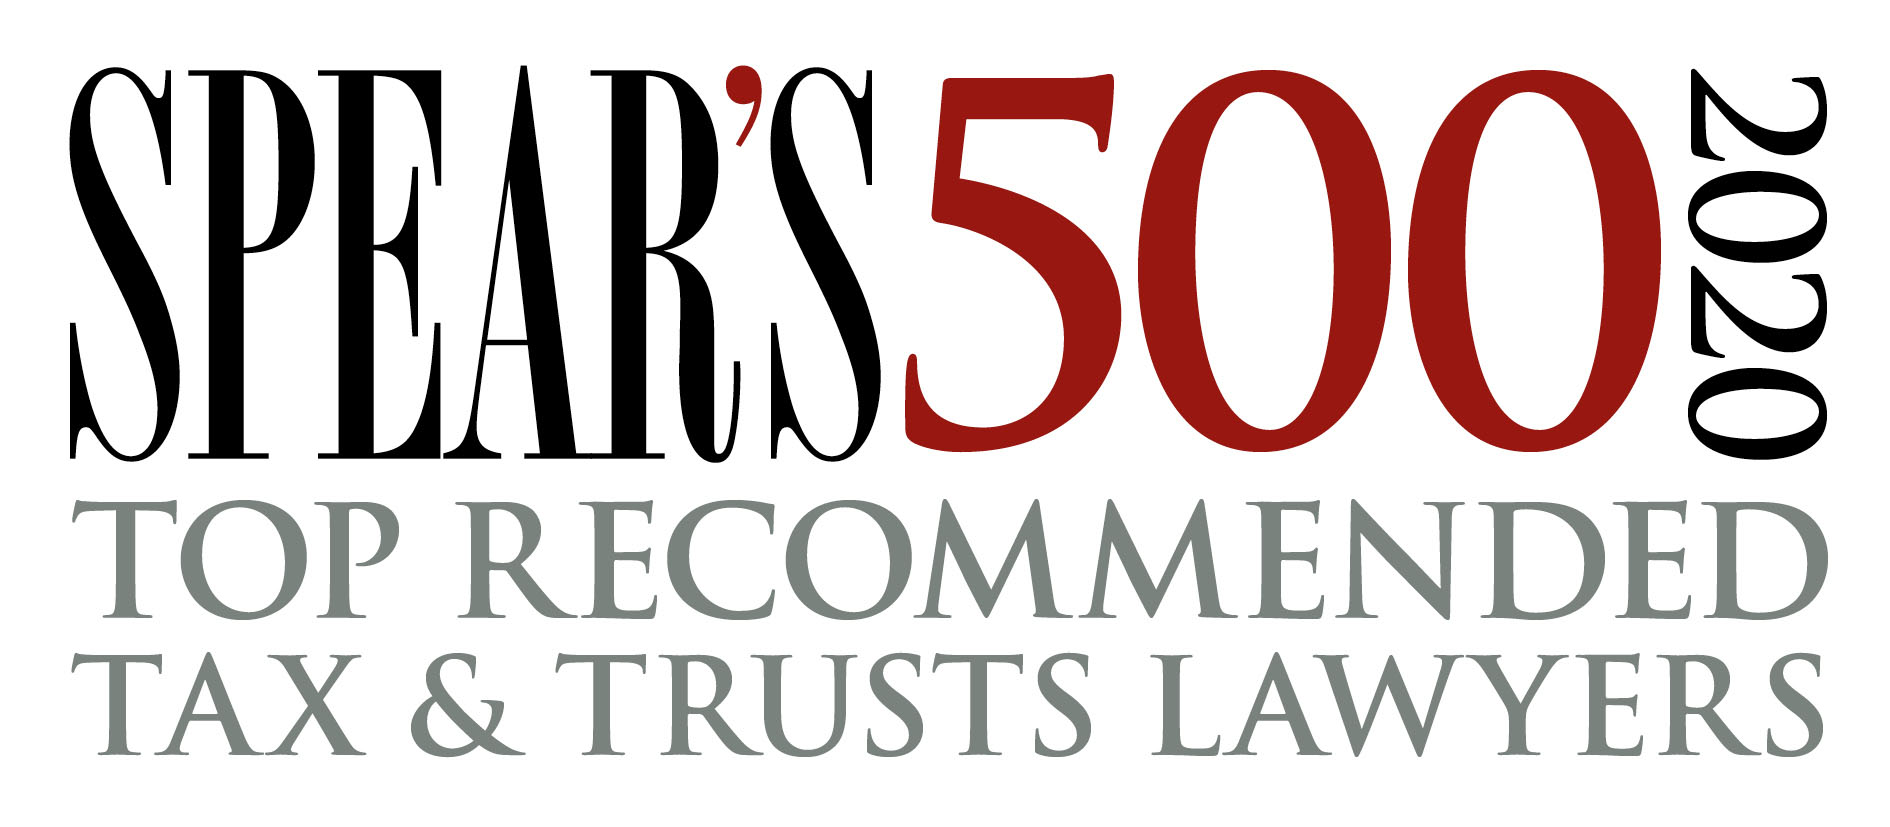 Spear's 500 2020 Top recommended tax and trust lawyers